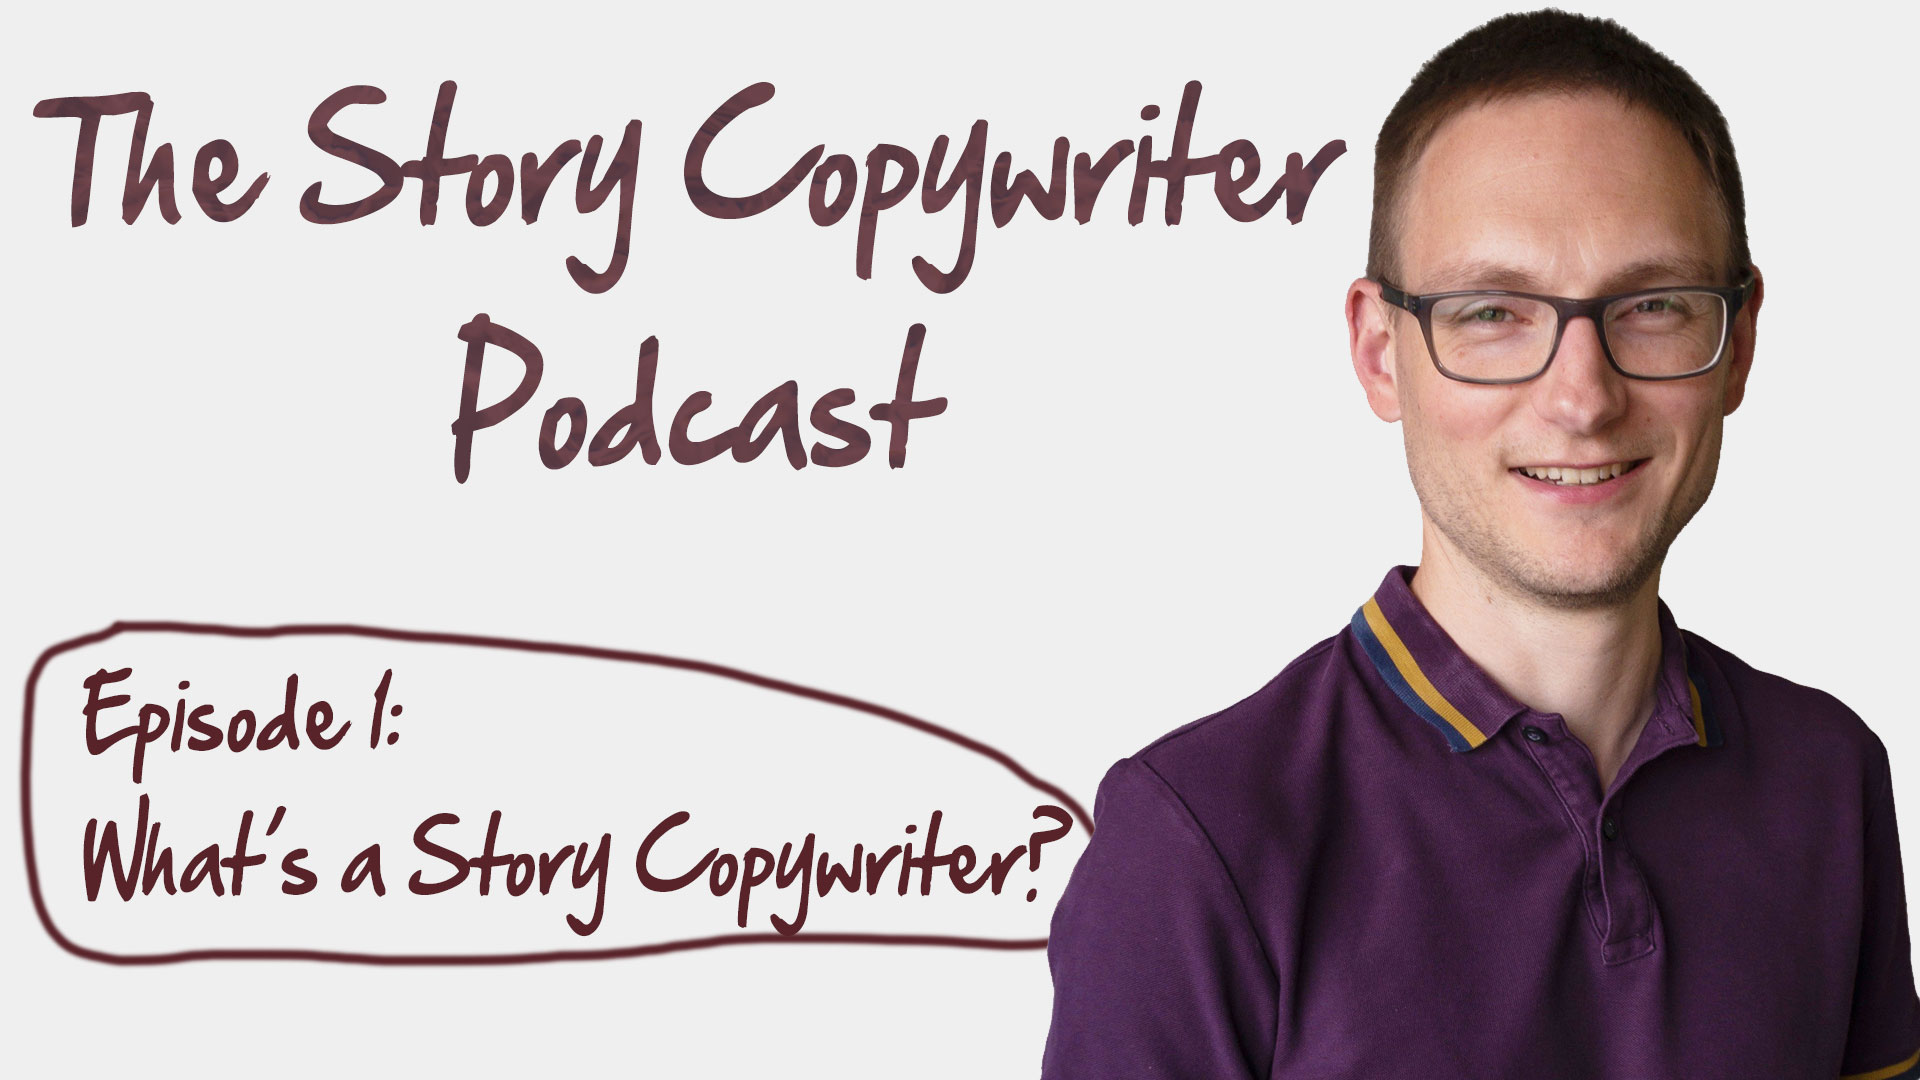 What is a Story Copywriter